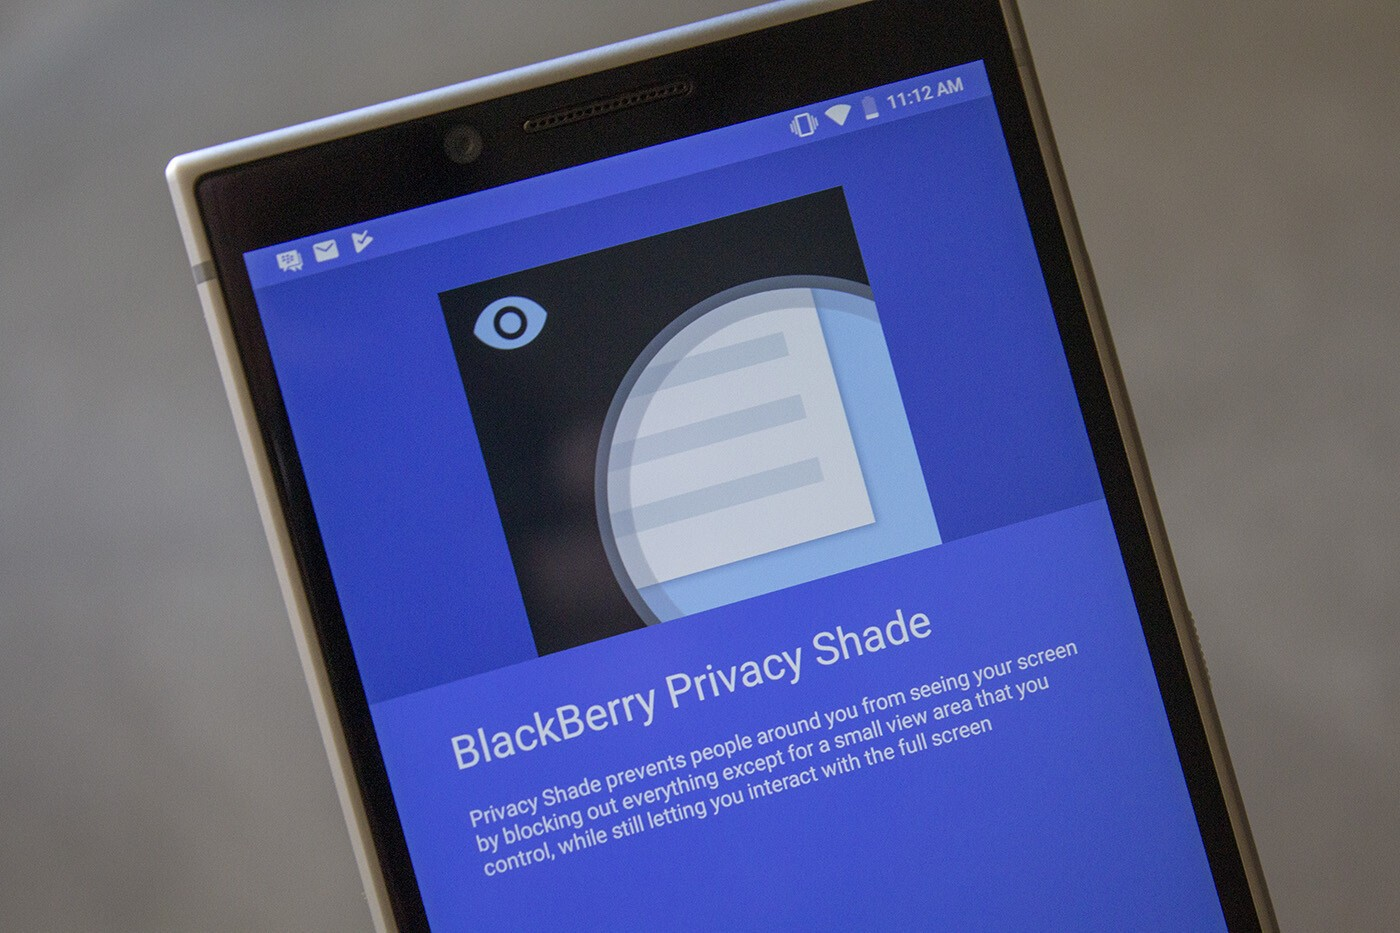 What's the big deal about BlackBerry Privacy Shade, anyway?